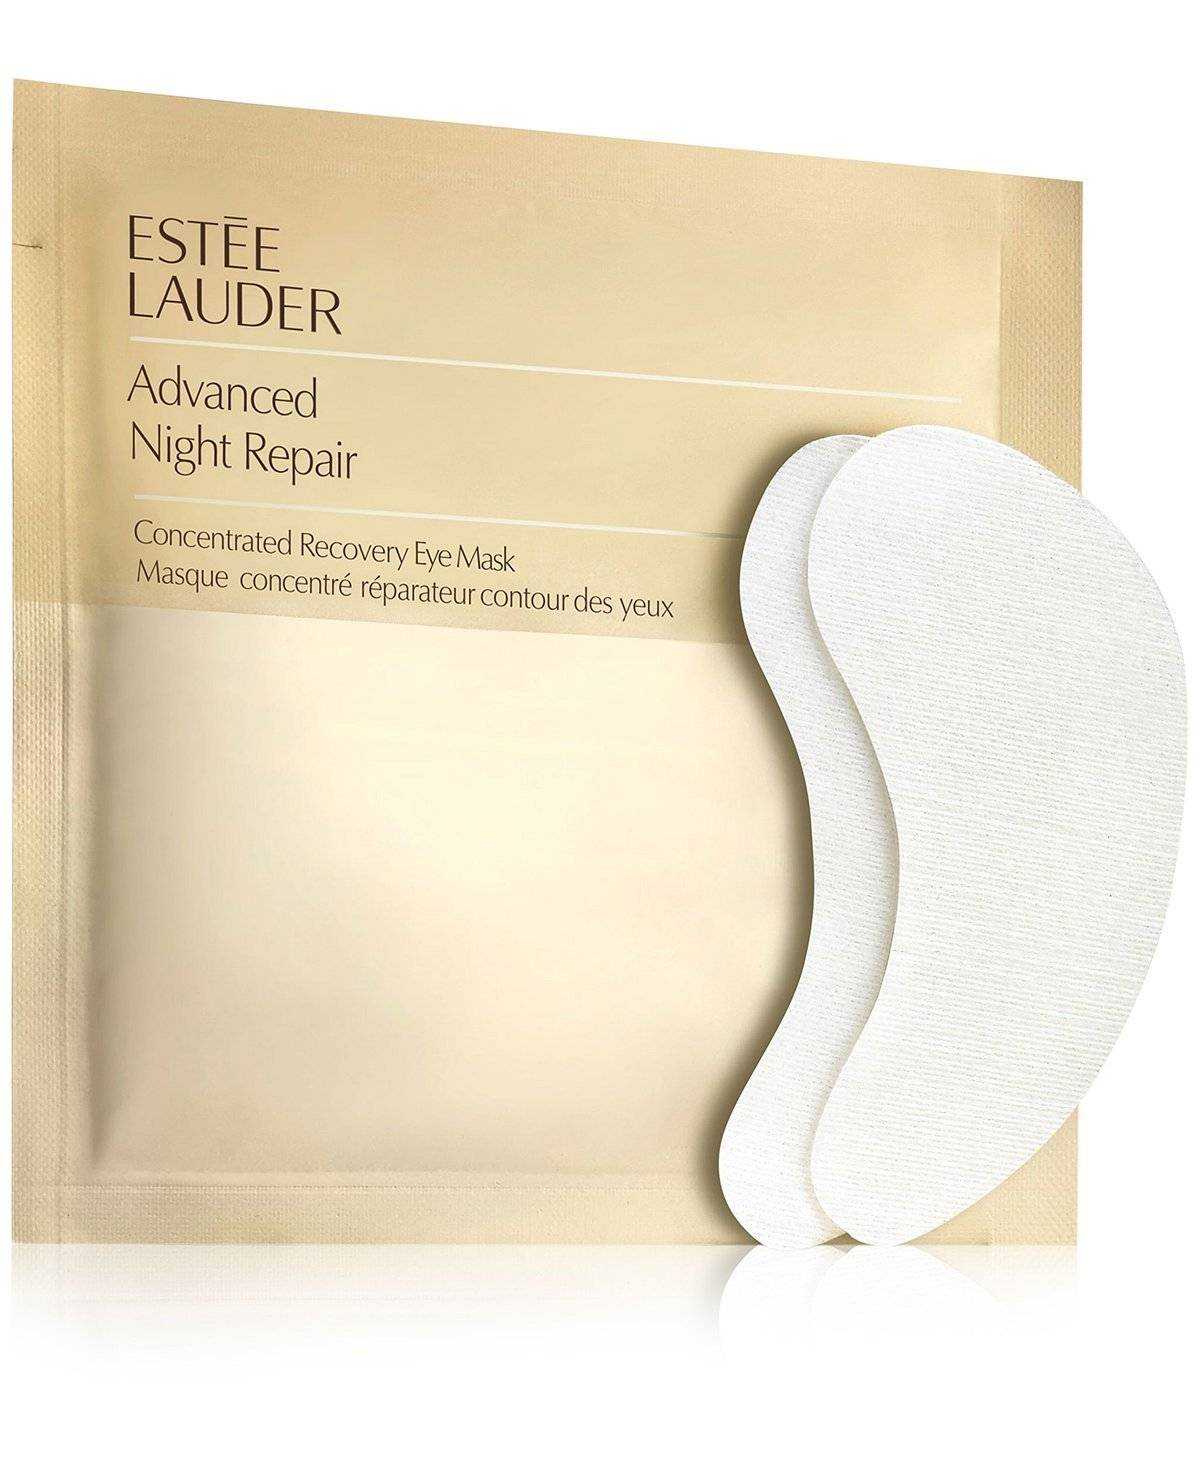 Estee Lauder Advanced Night Repair Concentrated Eye Recovery Mask 1 Unit